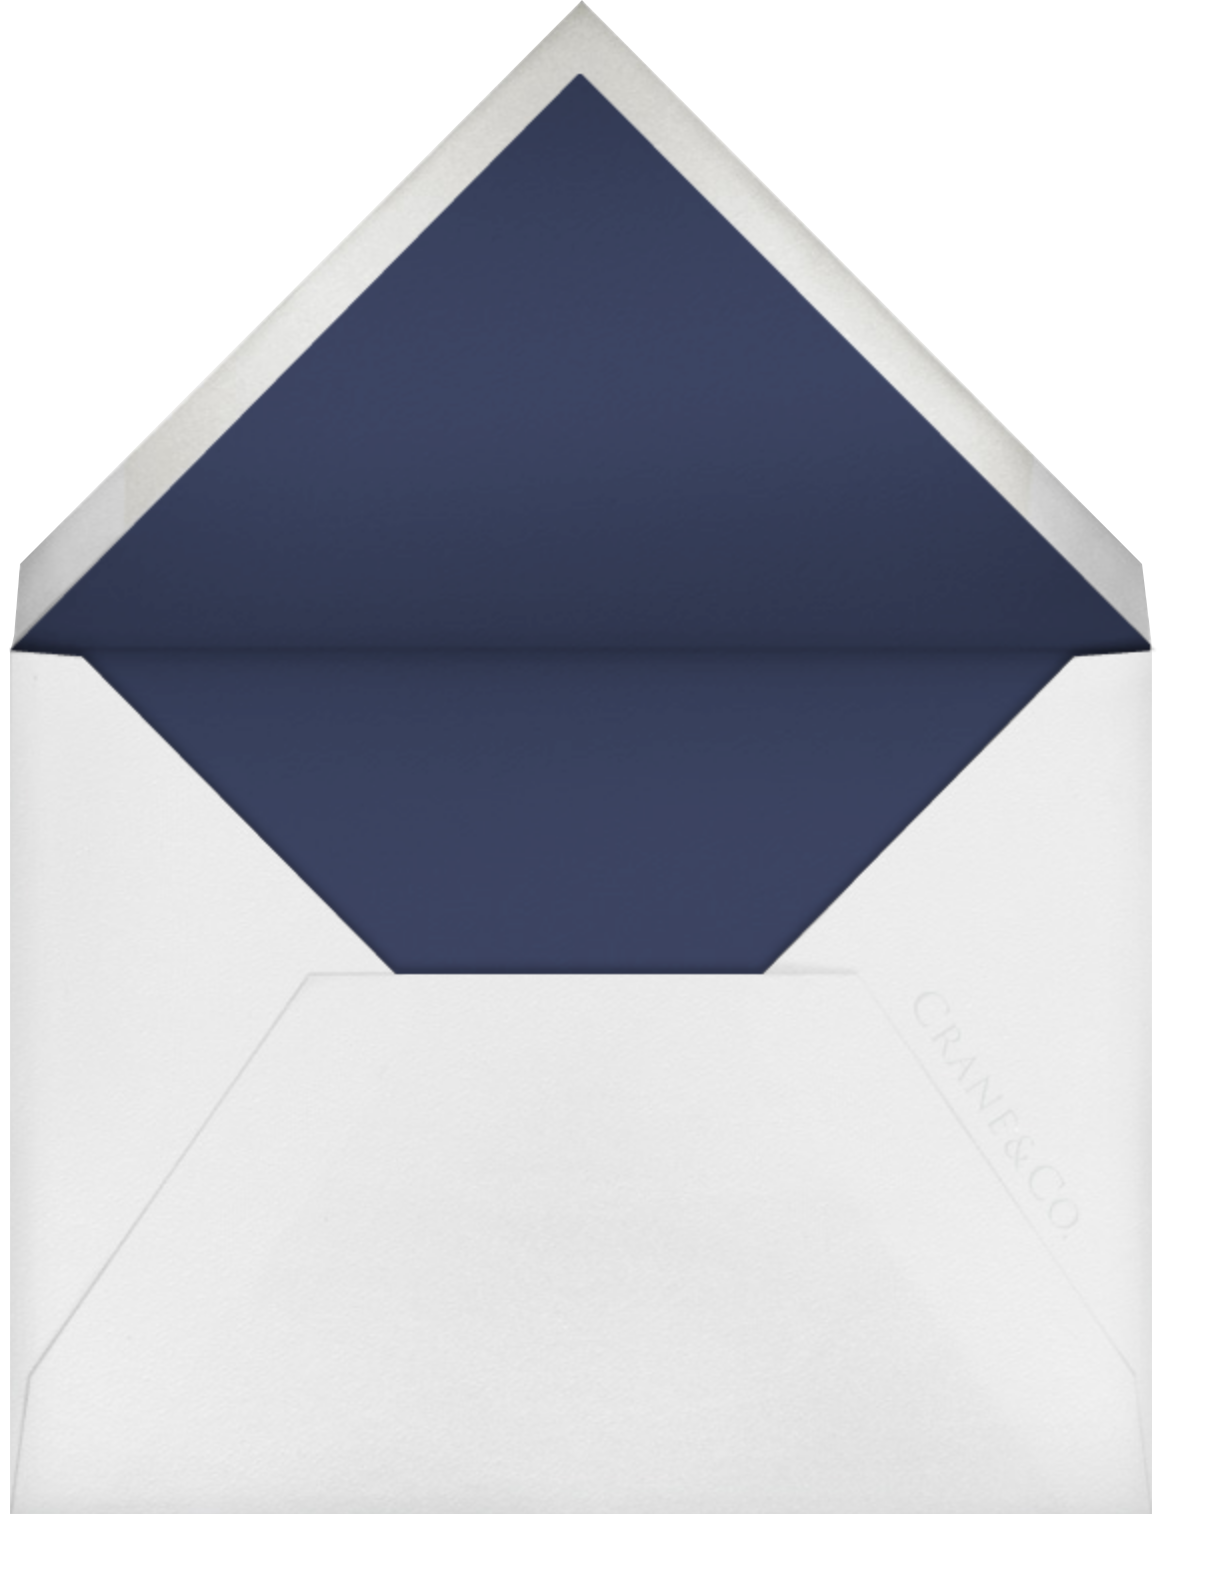 Painted Border - Navy - Paperless Post - Personalized stationery - envelope back